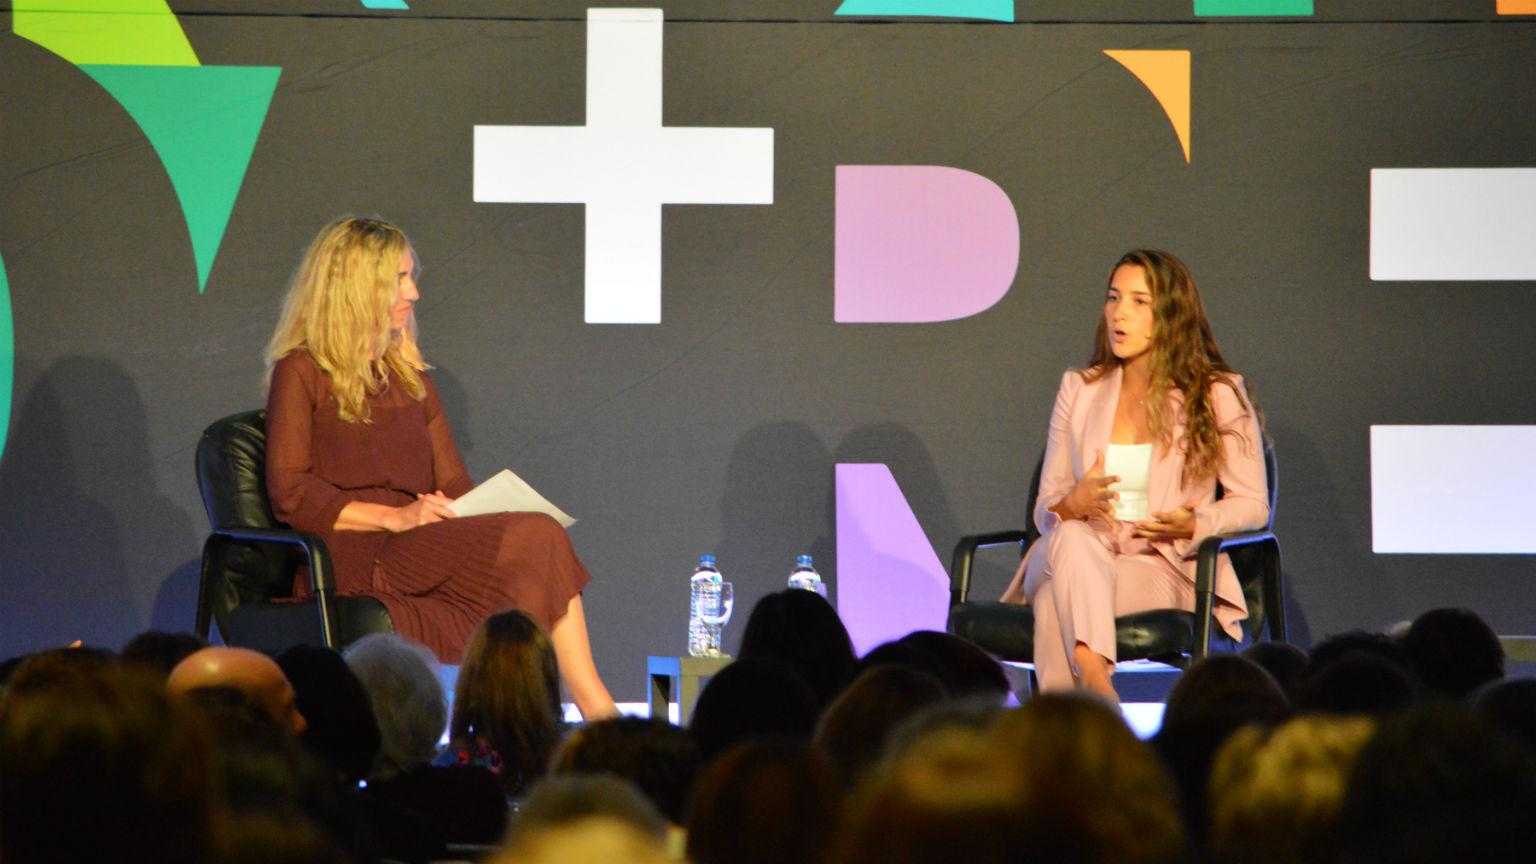 Olympic gymnast Aly Raisman, right, speaks with Chicago Tribune columnist Heidi Stevens on Tuesday, Sept. 18, 2018 during the Chicago Foundation for Women's 33rd annual symposium. (Kristen Thometz / Chicago Tonight)